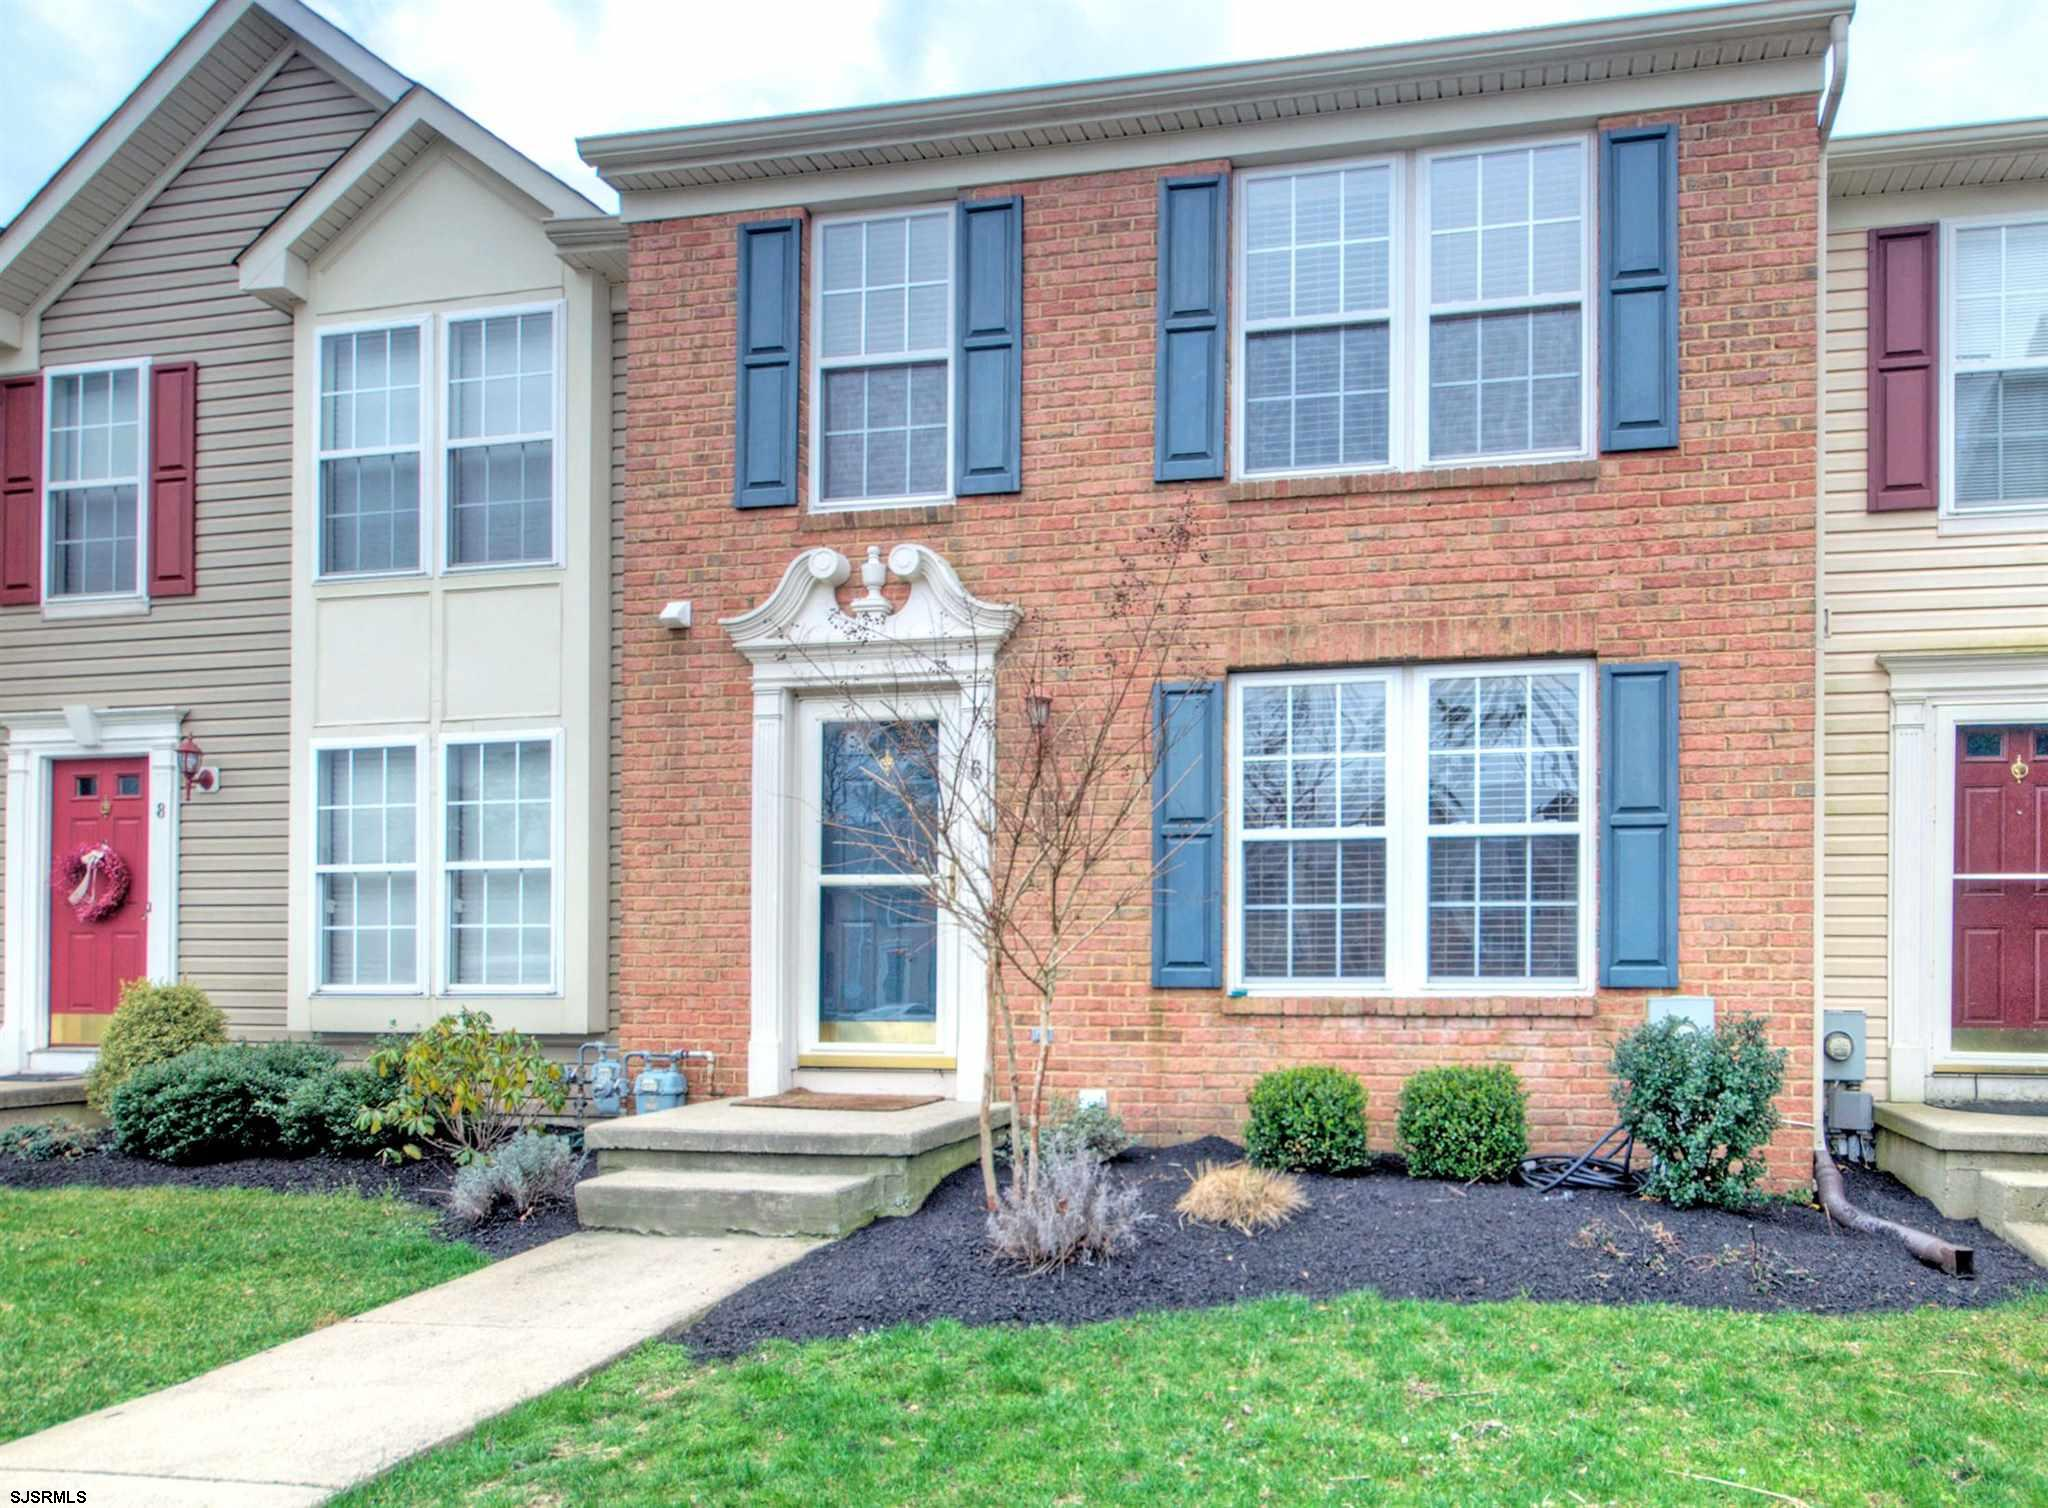 ***NO MORE SHOWINGS PER SELLERS REQUEST MULTIPLE OFFERS***Victoria Crossing Beauty! Welcome home to this spacious 3 story townhome featuring 3 bedrooms and 2 1/2 bathrooms.  As you enter the home you will notice hardwood flooring and a spacious living/family room. The kitchen offers a full appliance package, center island with room for bar stools and new vinyl plank flooring!  There is an additional sun room that features a slider to your own private deck that backs up to the woods for privacy.  The first level also features a half bathroom.  The second level features all 3 bedrooms and a full bathroom in hallway and an extra large master bathroom featuring double sinks, stand up shower and a corner soaking tub.  The lower basement level fe